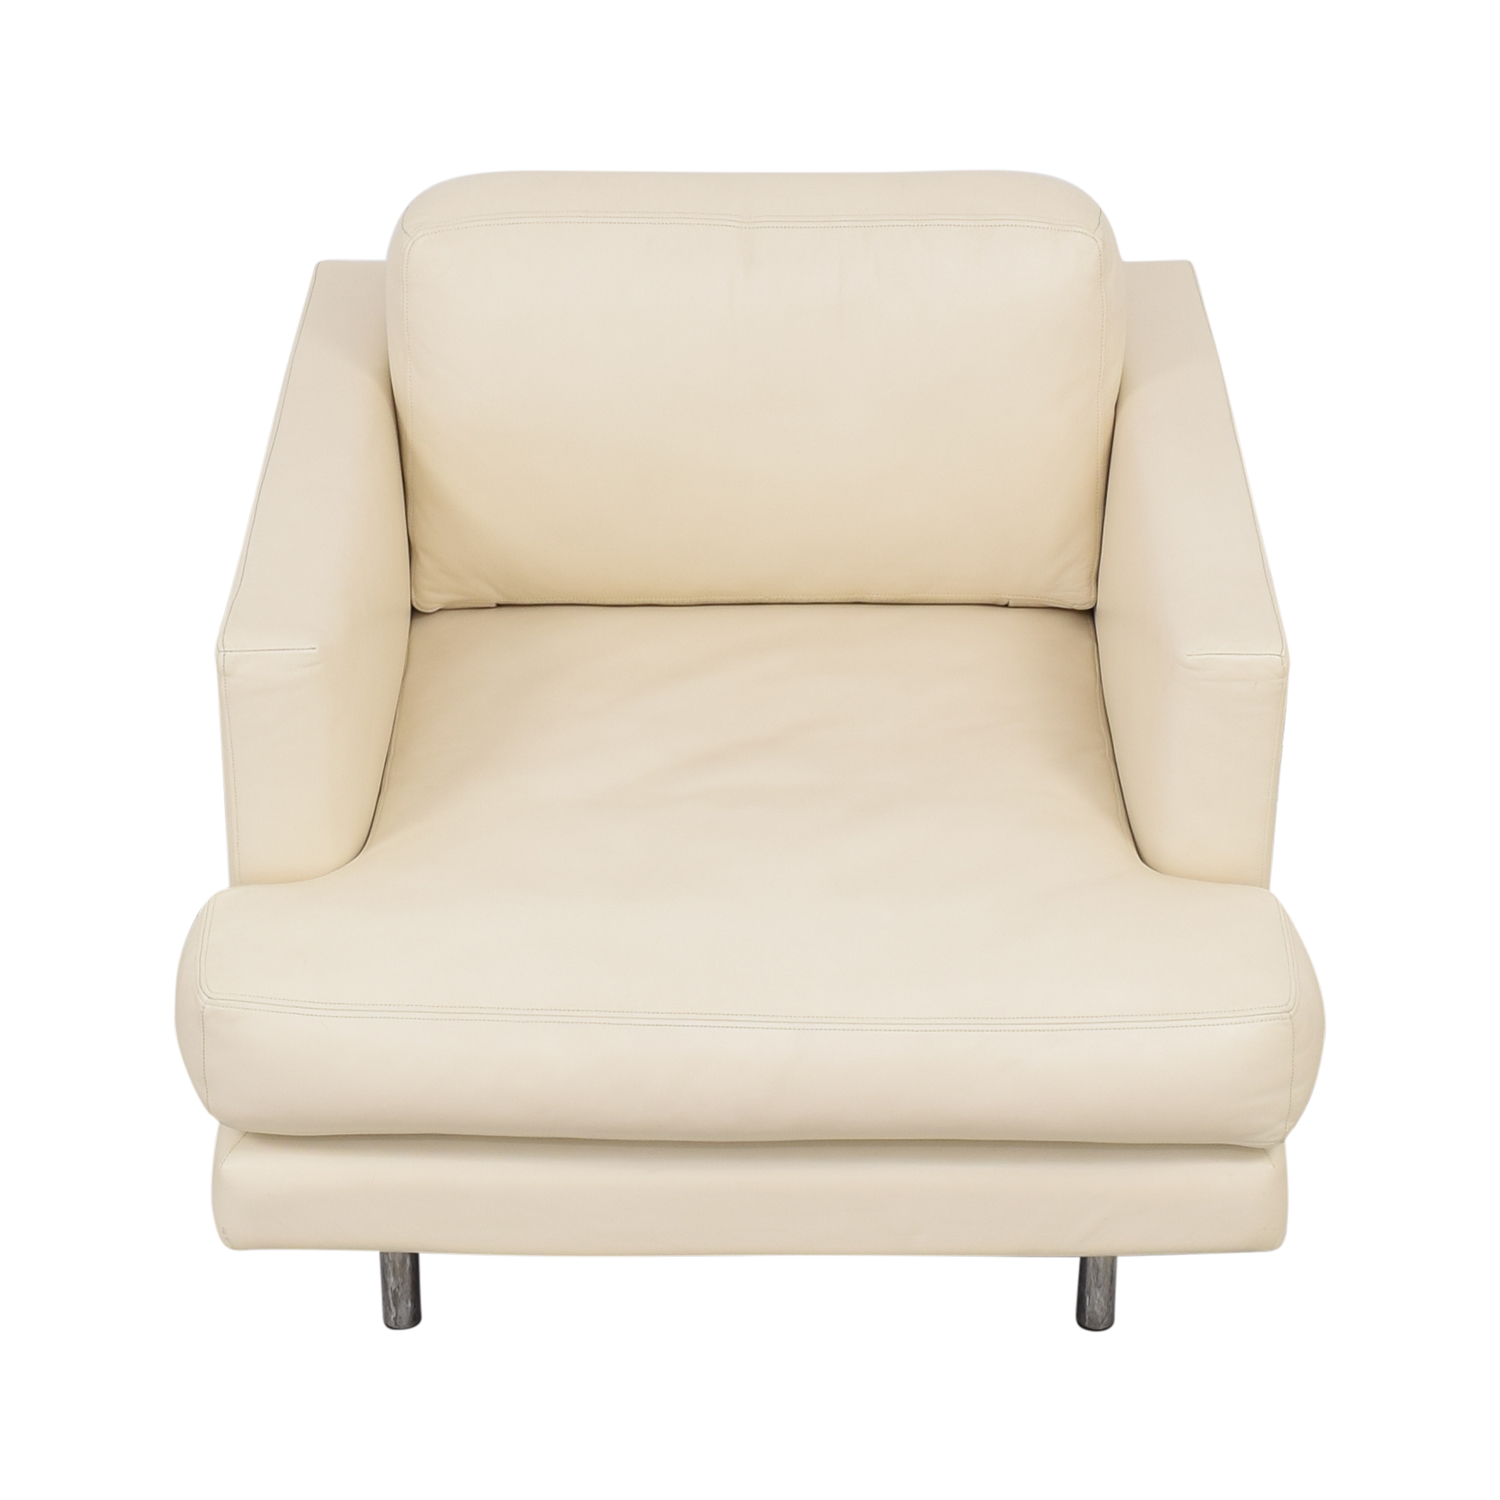 Knoll Knoll D'Urso Residential Lounge Chair second hand